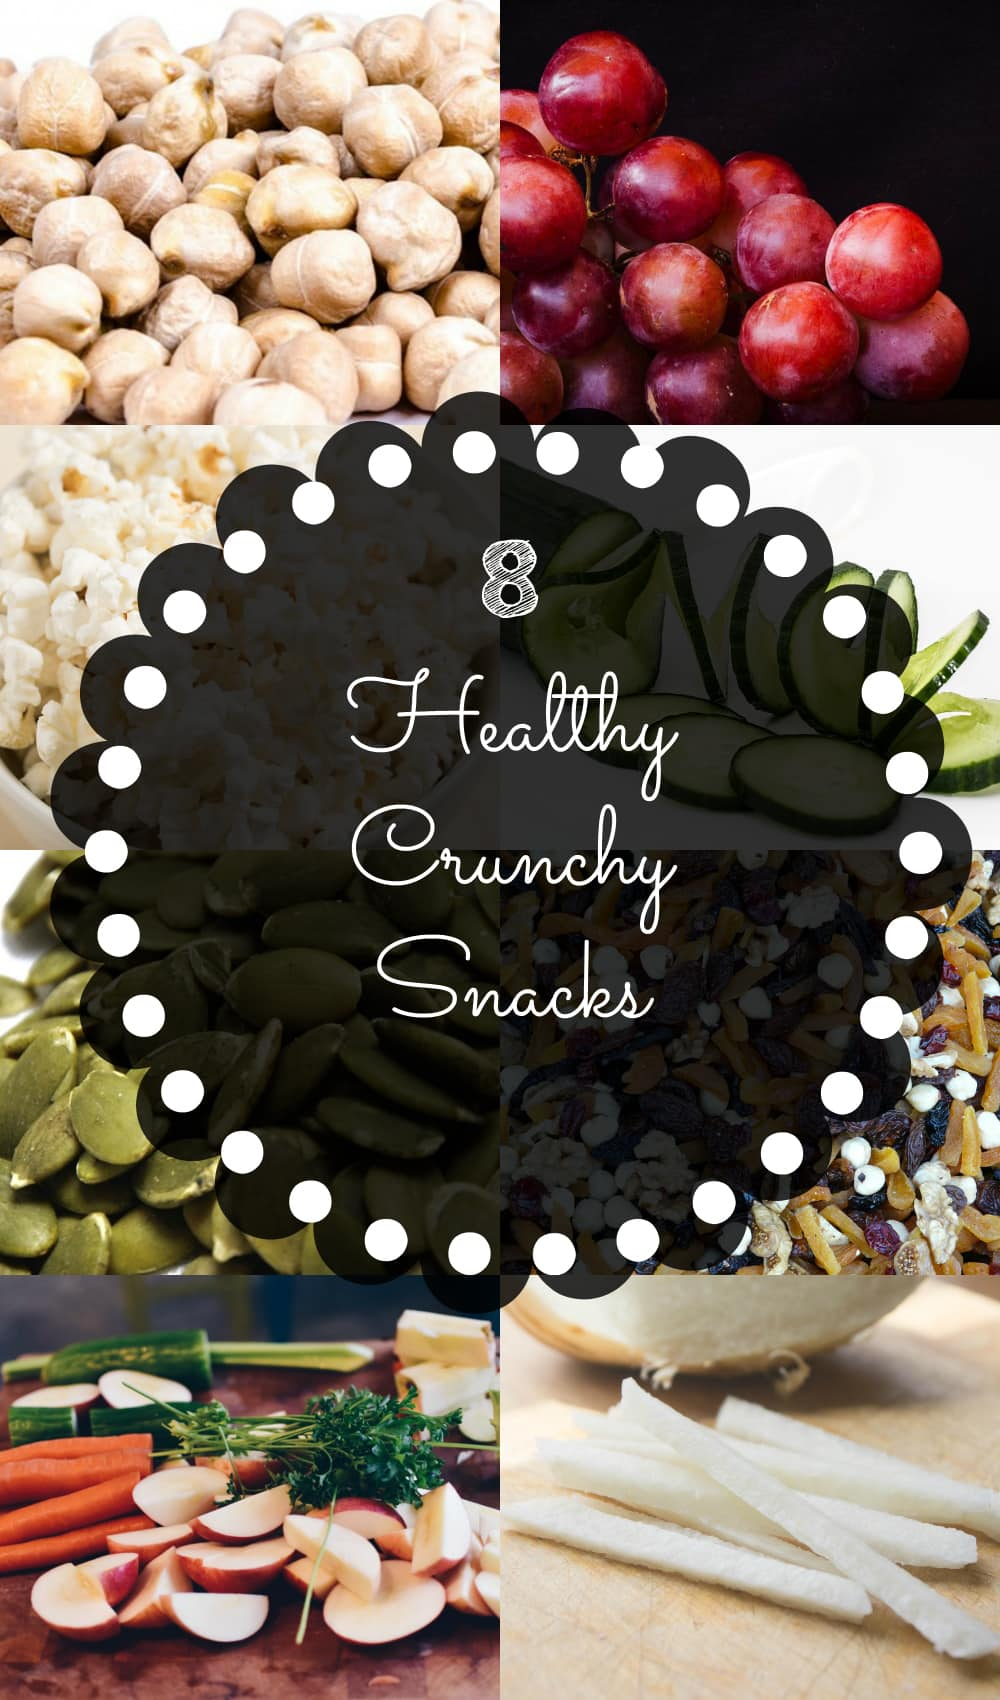 Healthy Crunchy Snacks